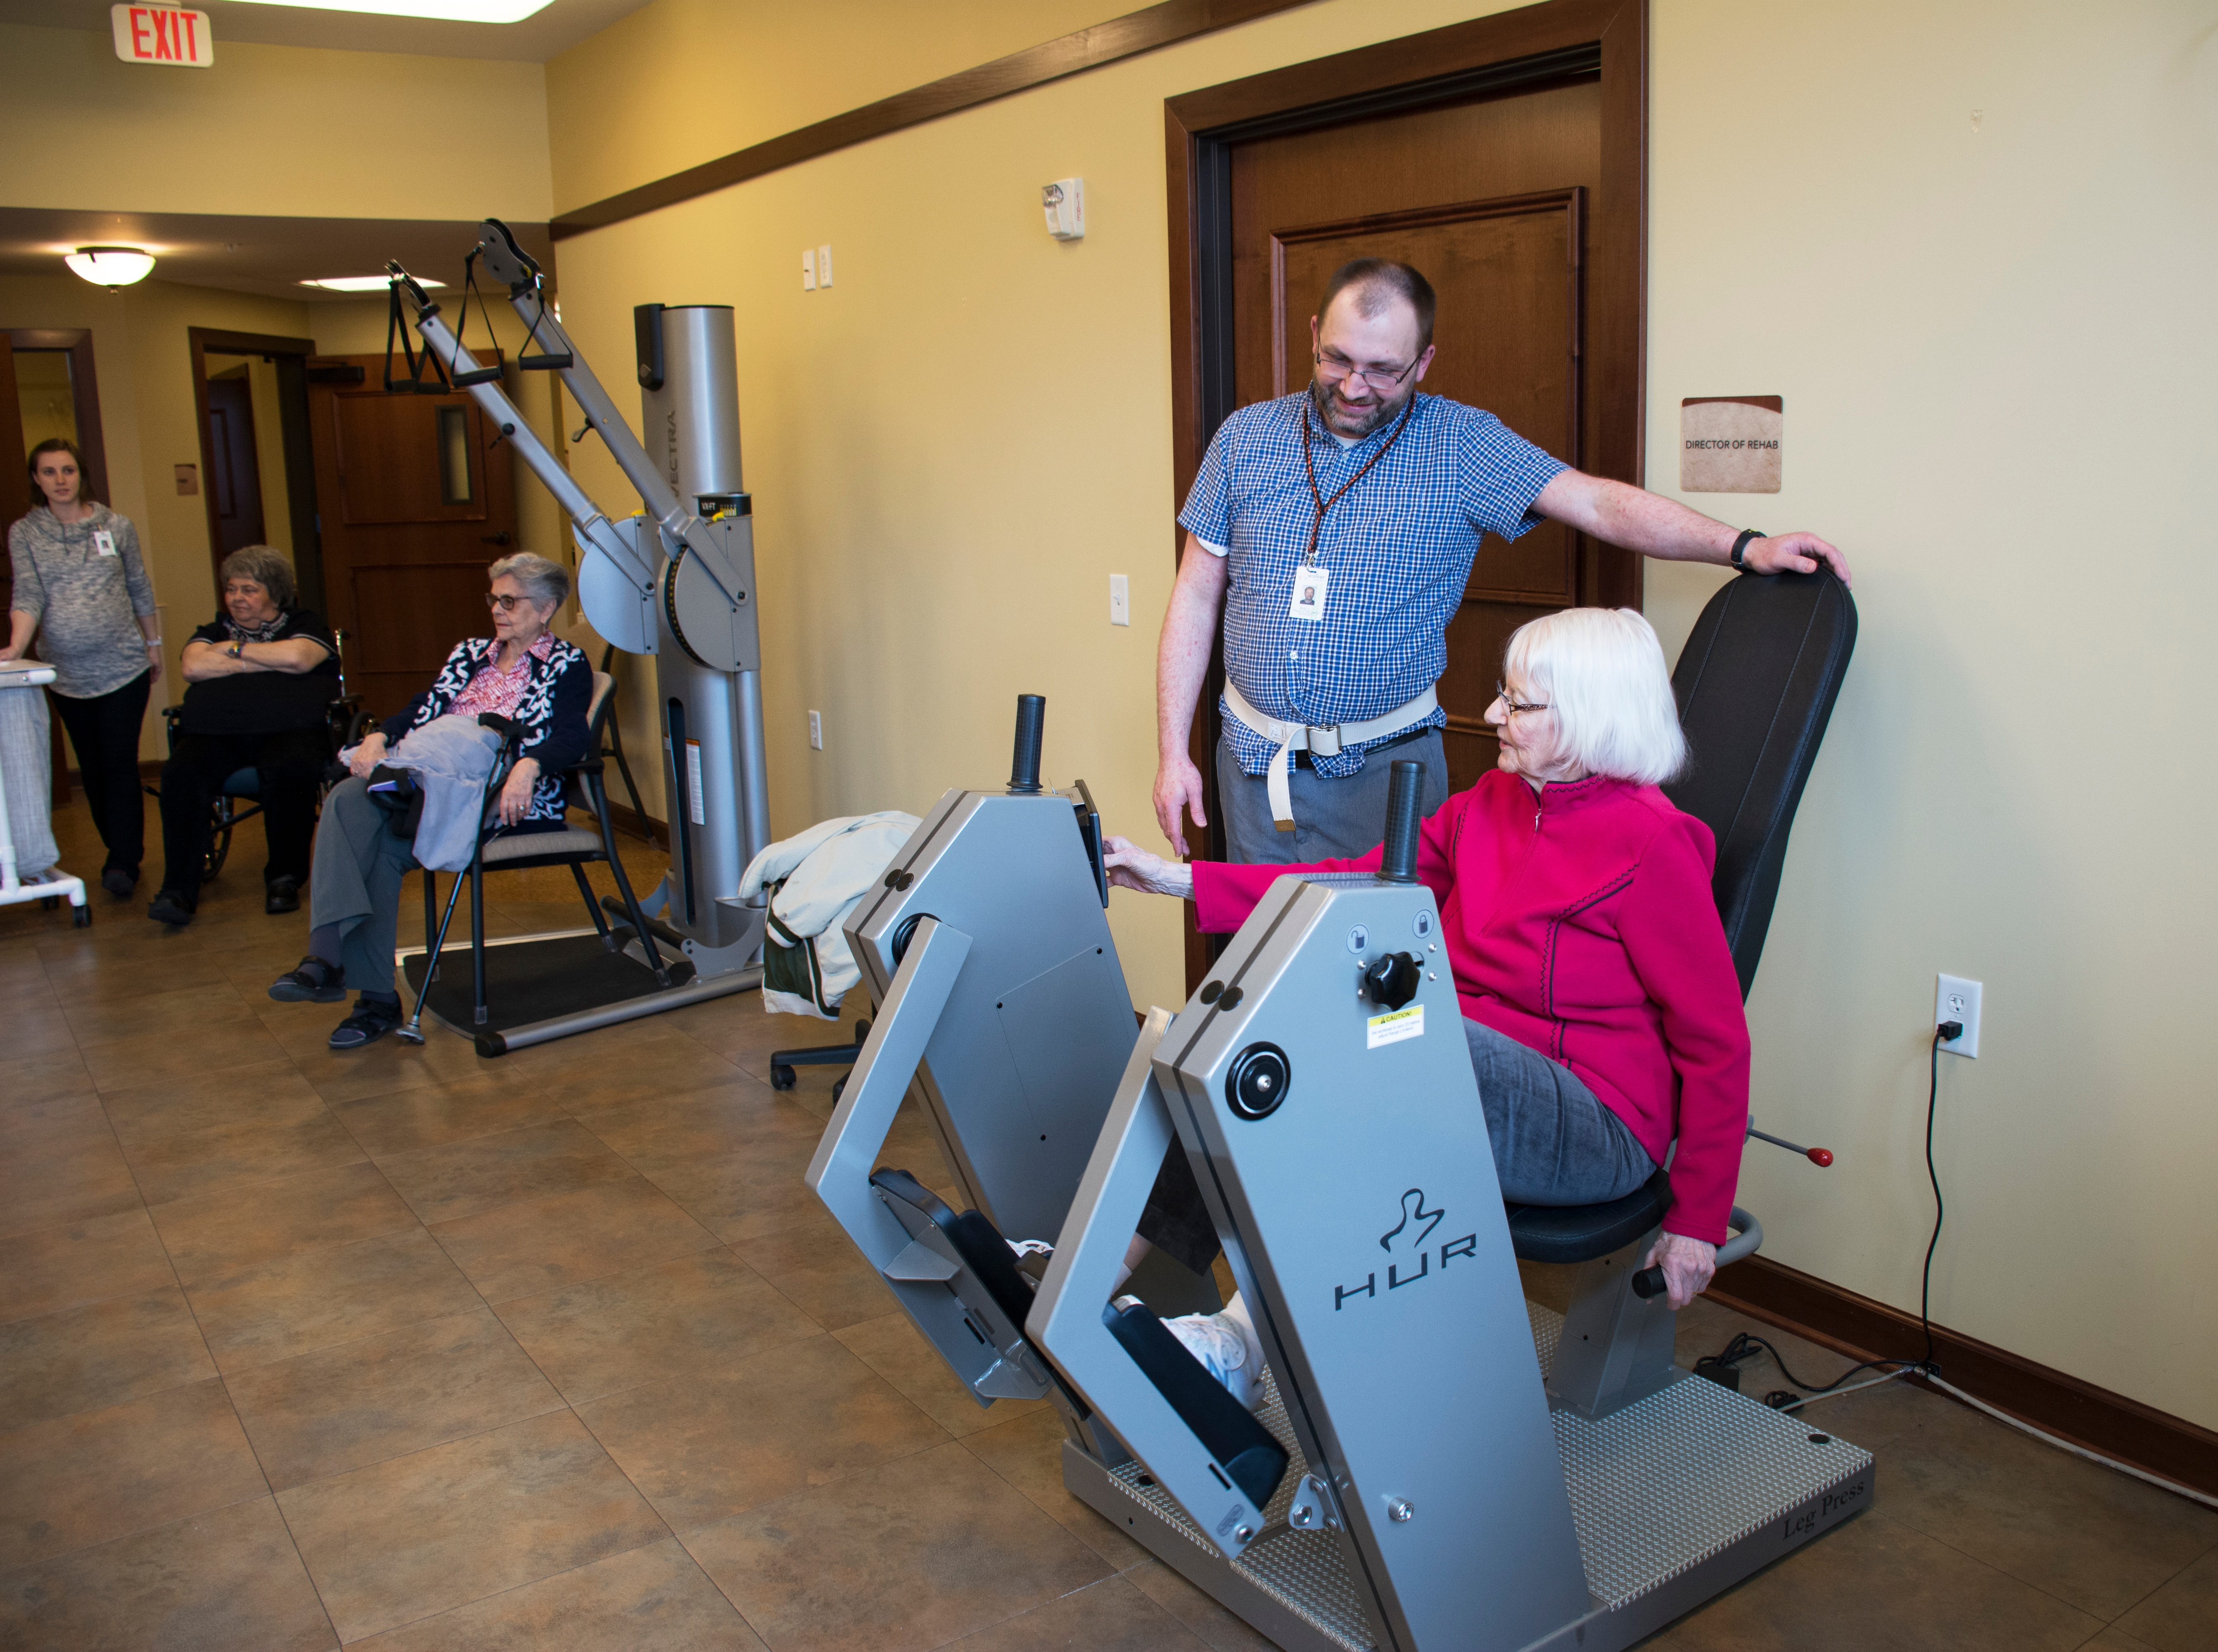 Did You Know? Senior Fitness Center Opportunities at Walker Methodist